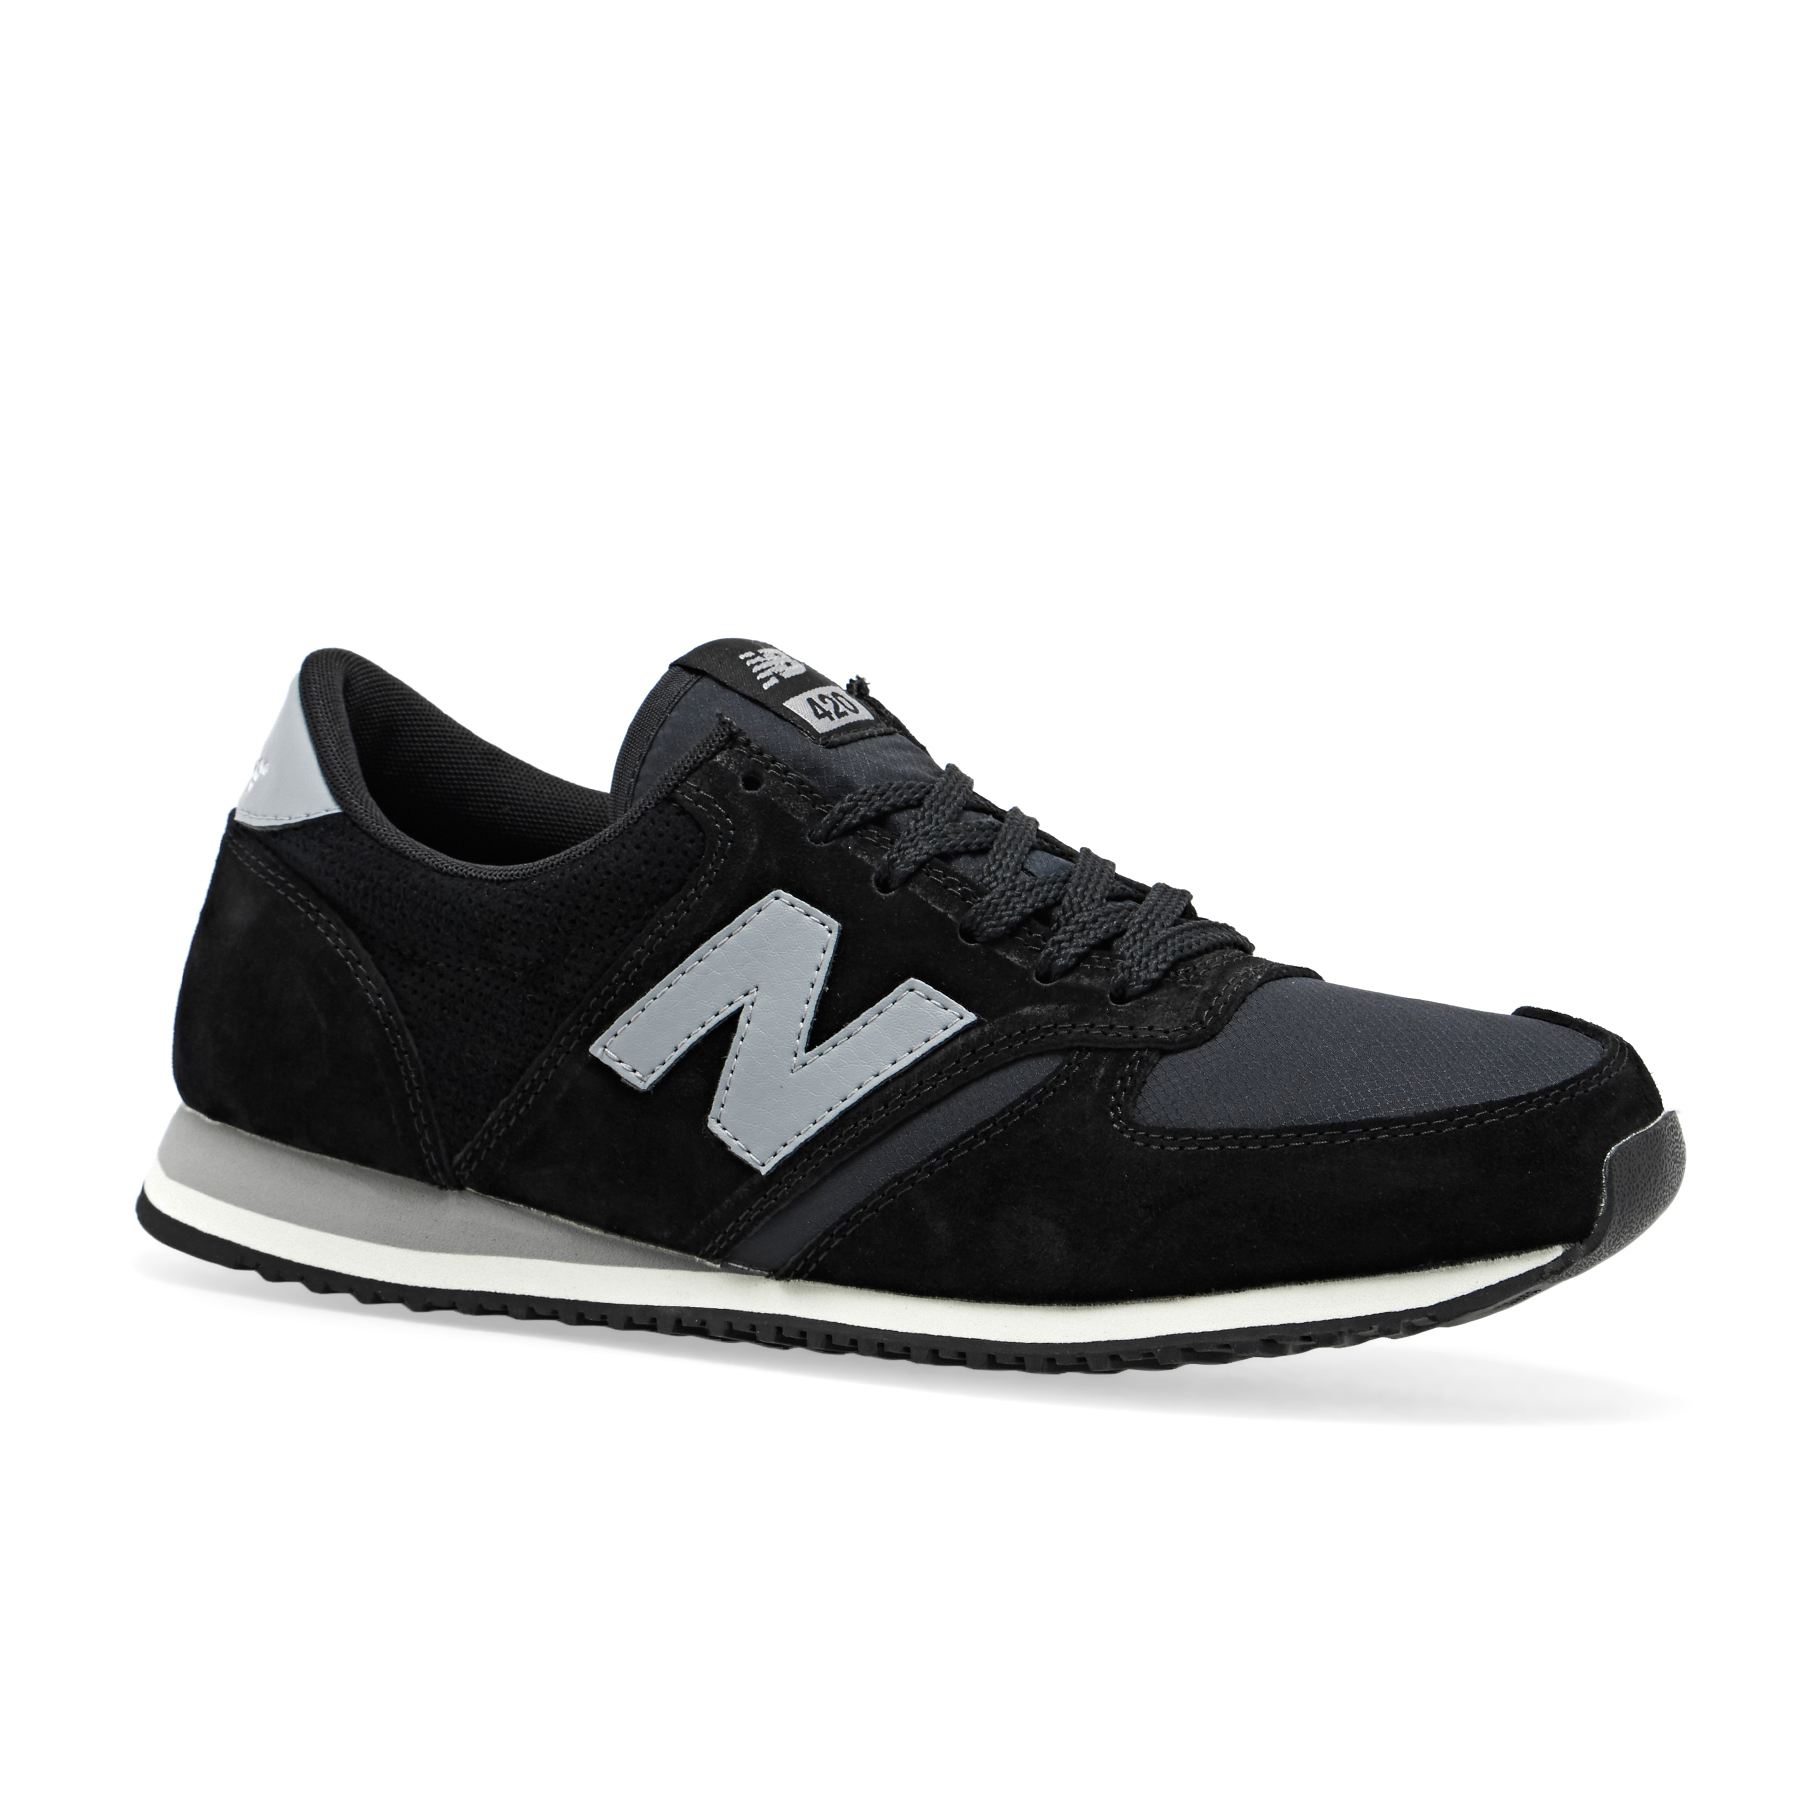 New Balance Shoes, Trainers & Bags Surfdome UK